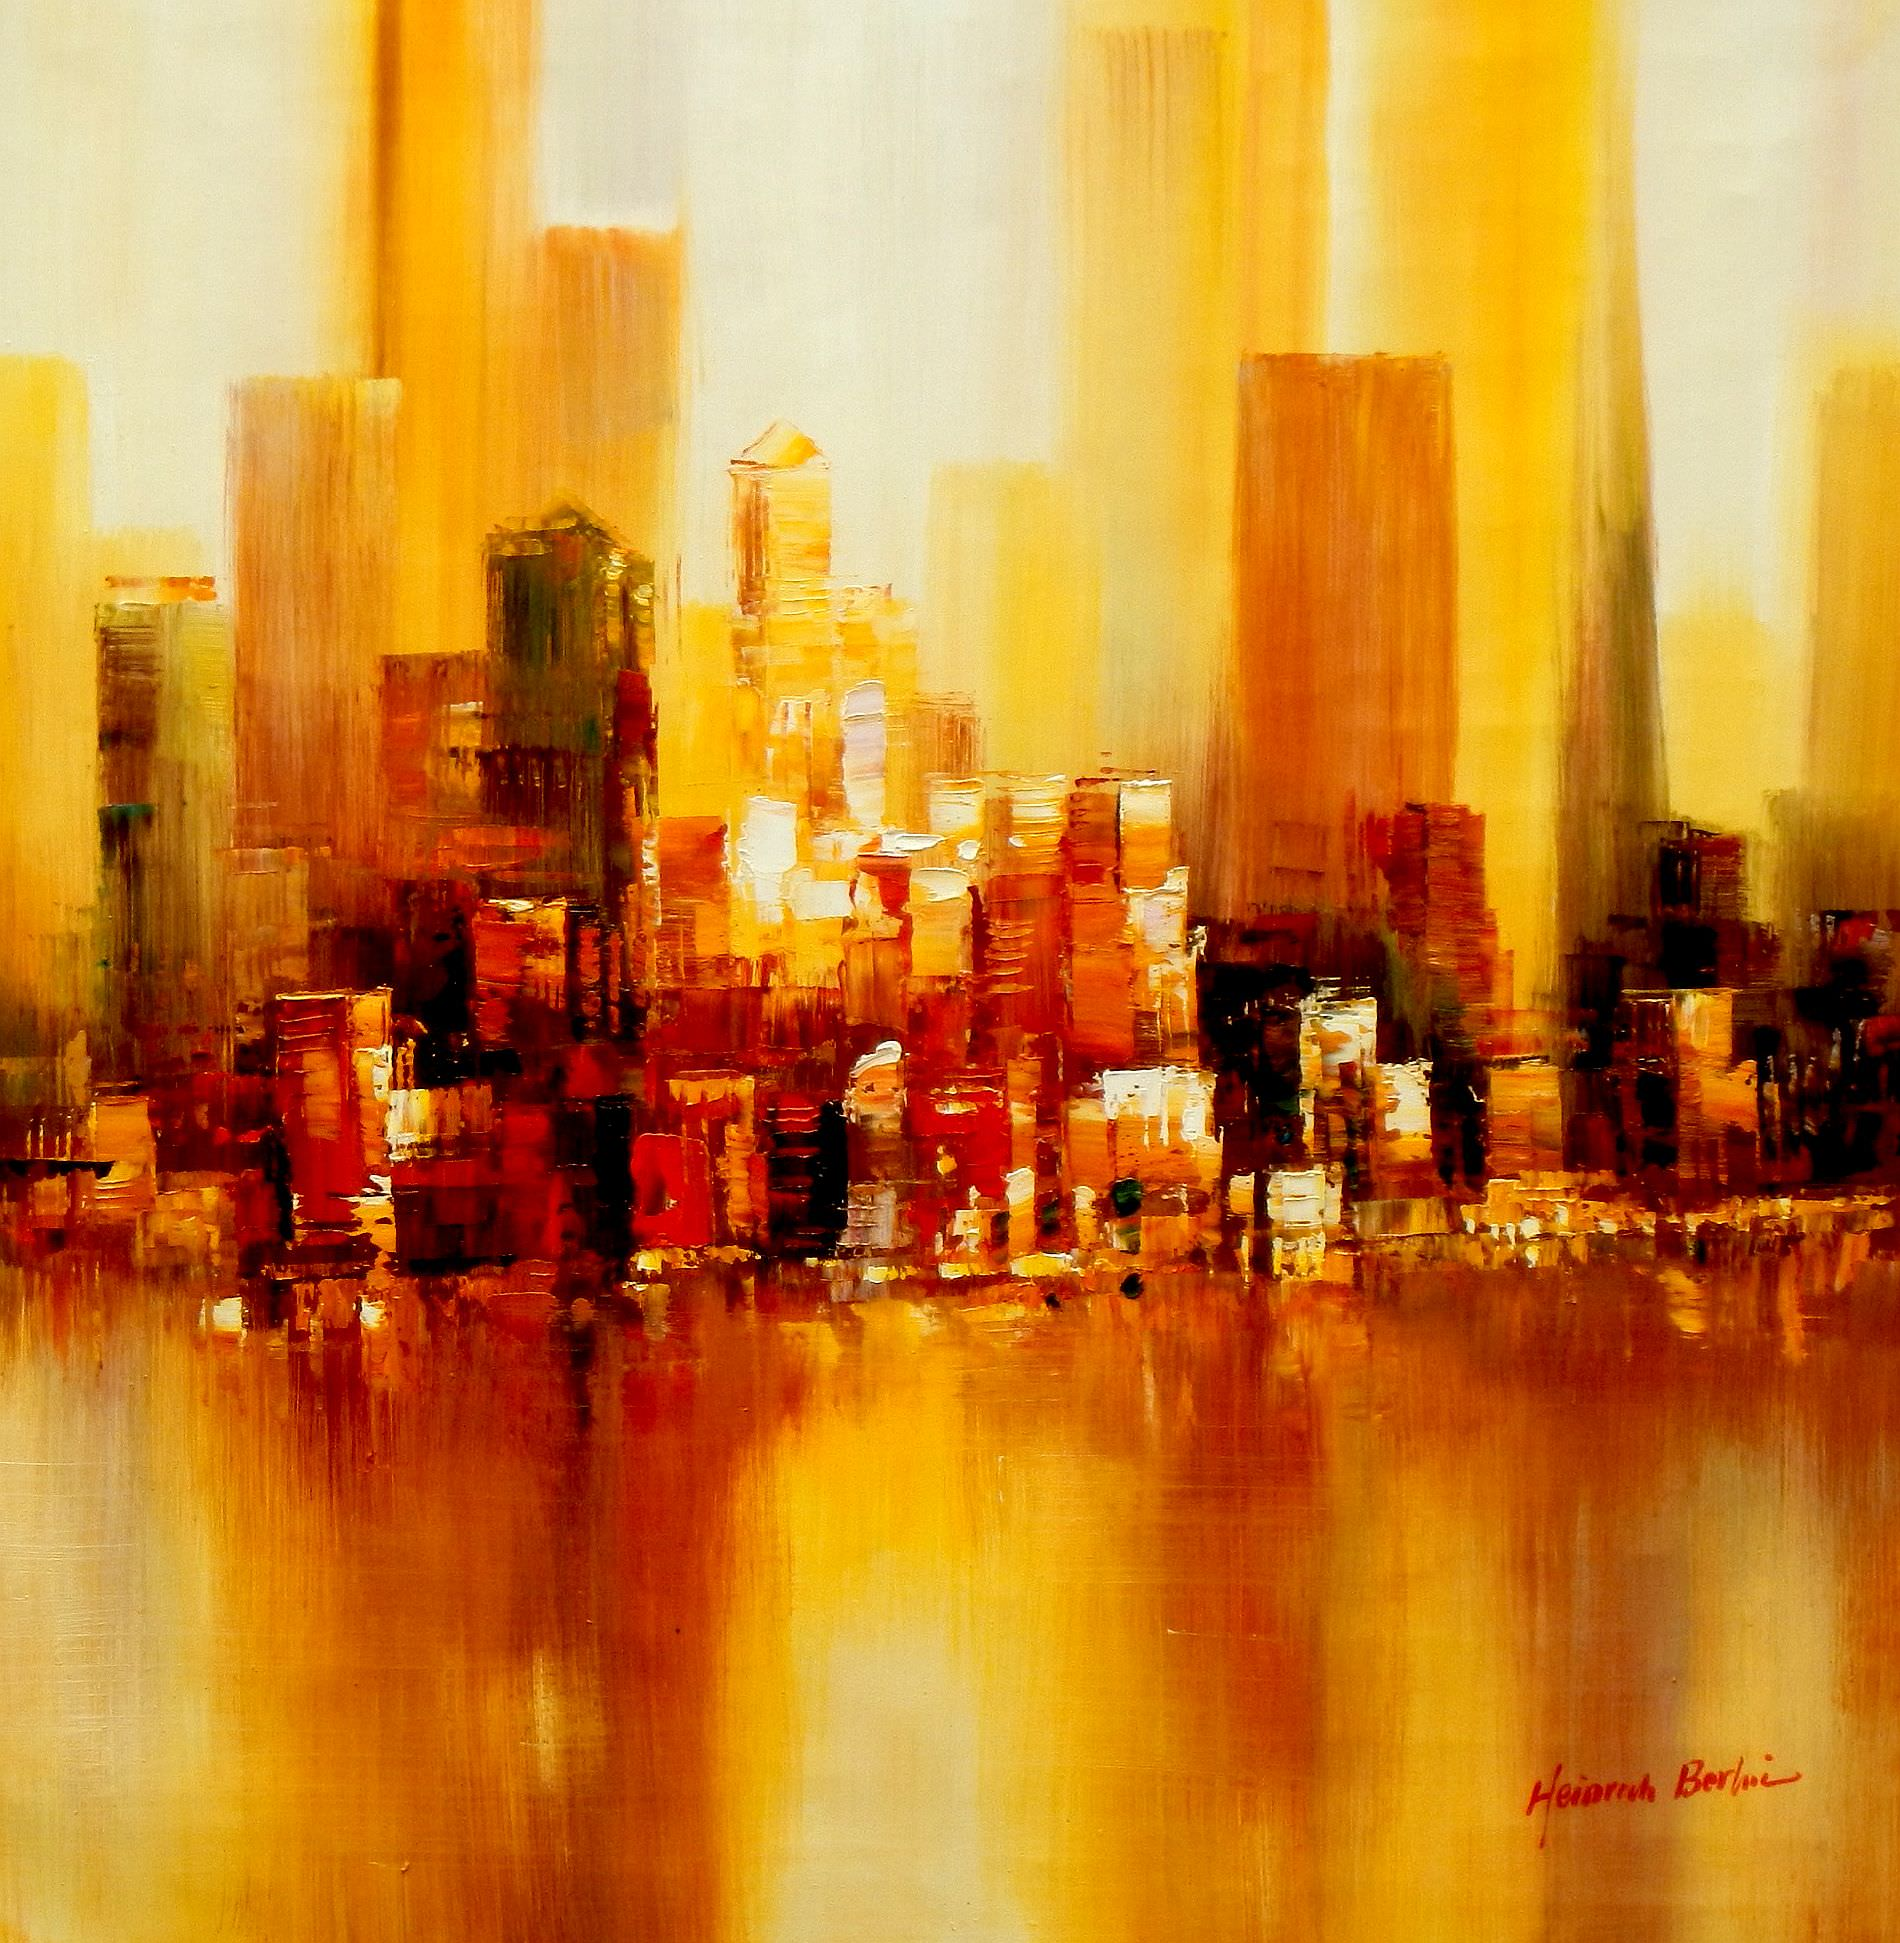 Abstrakt New York Manhattan Skyline im Herbst g93469 80x80cm abstraktes Ölbild